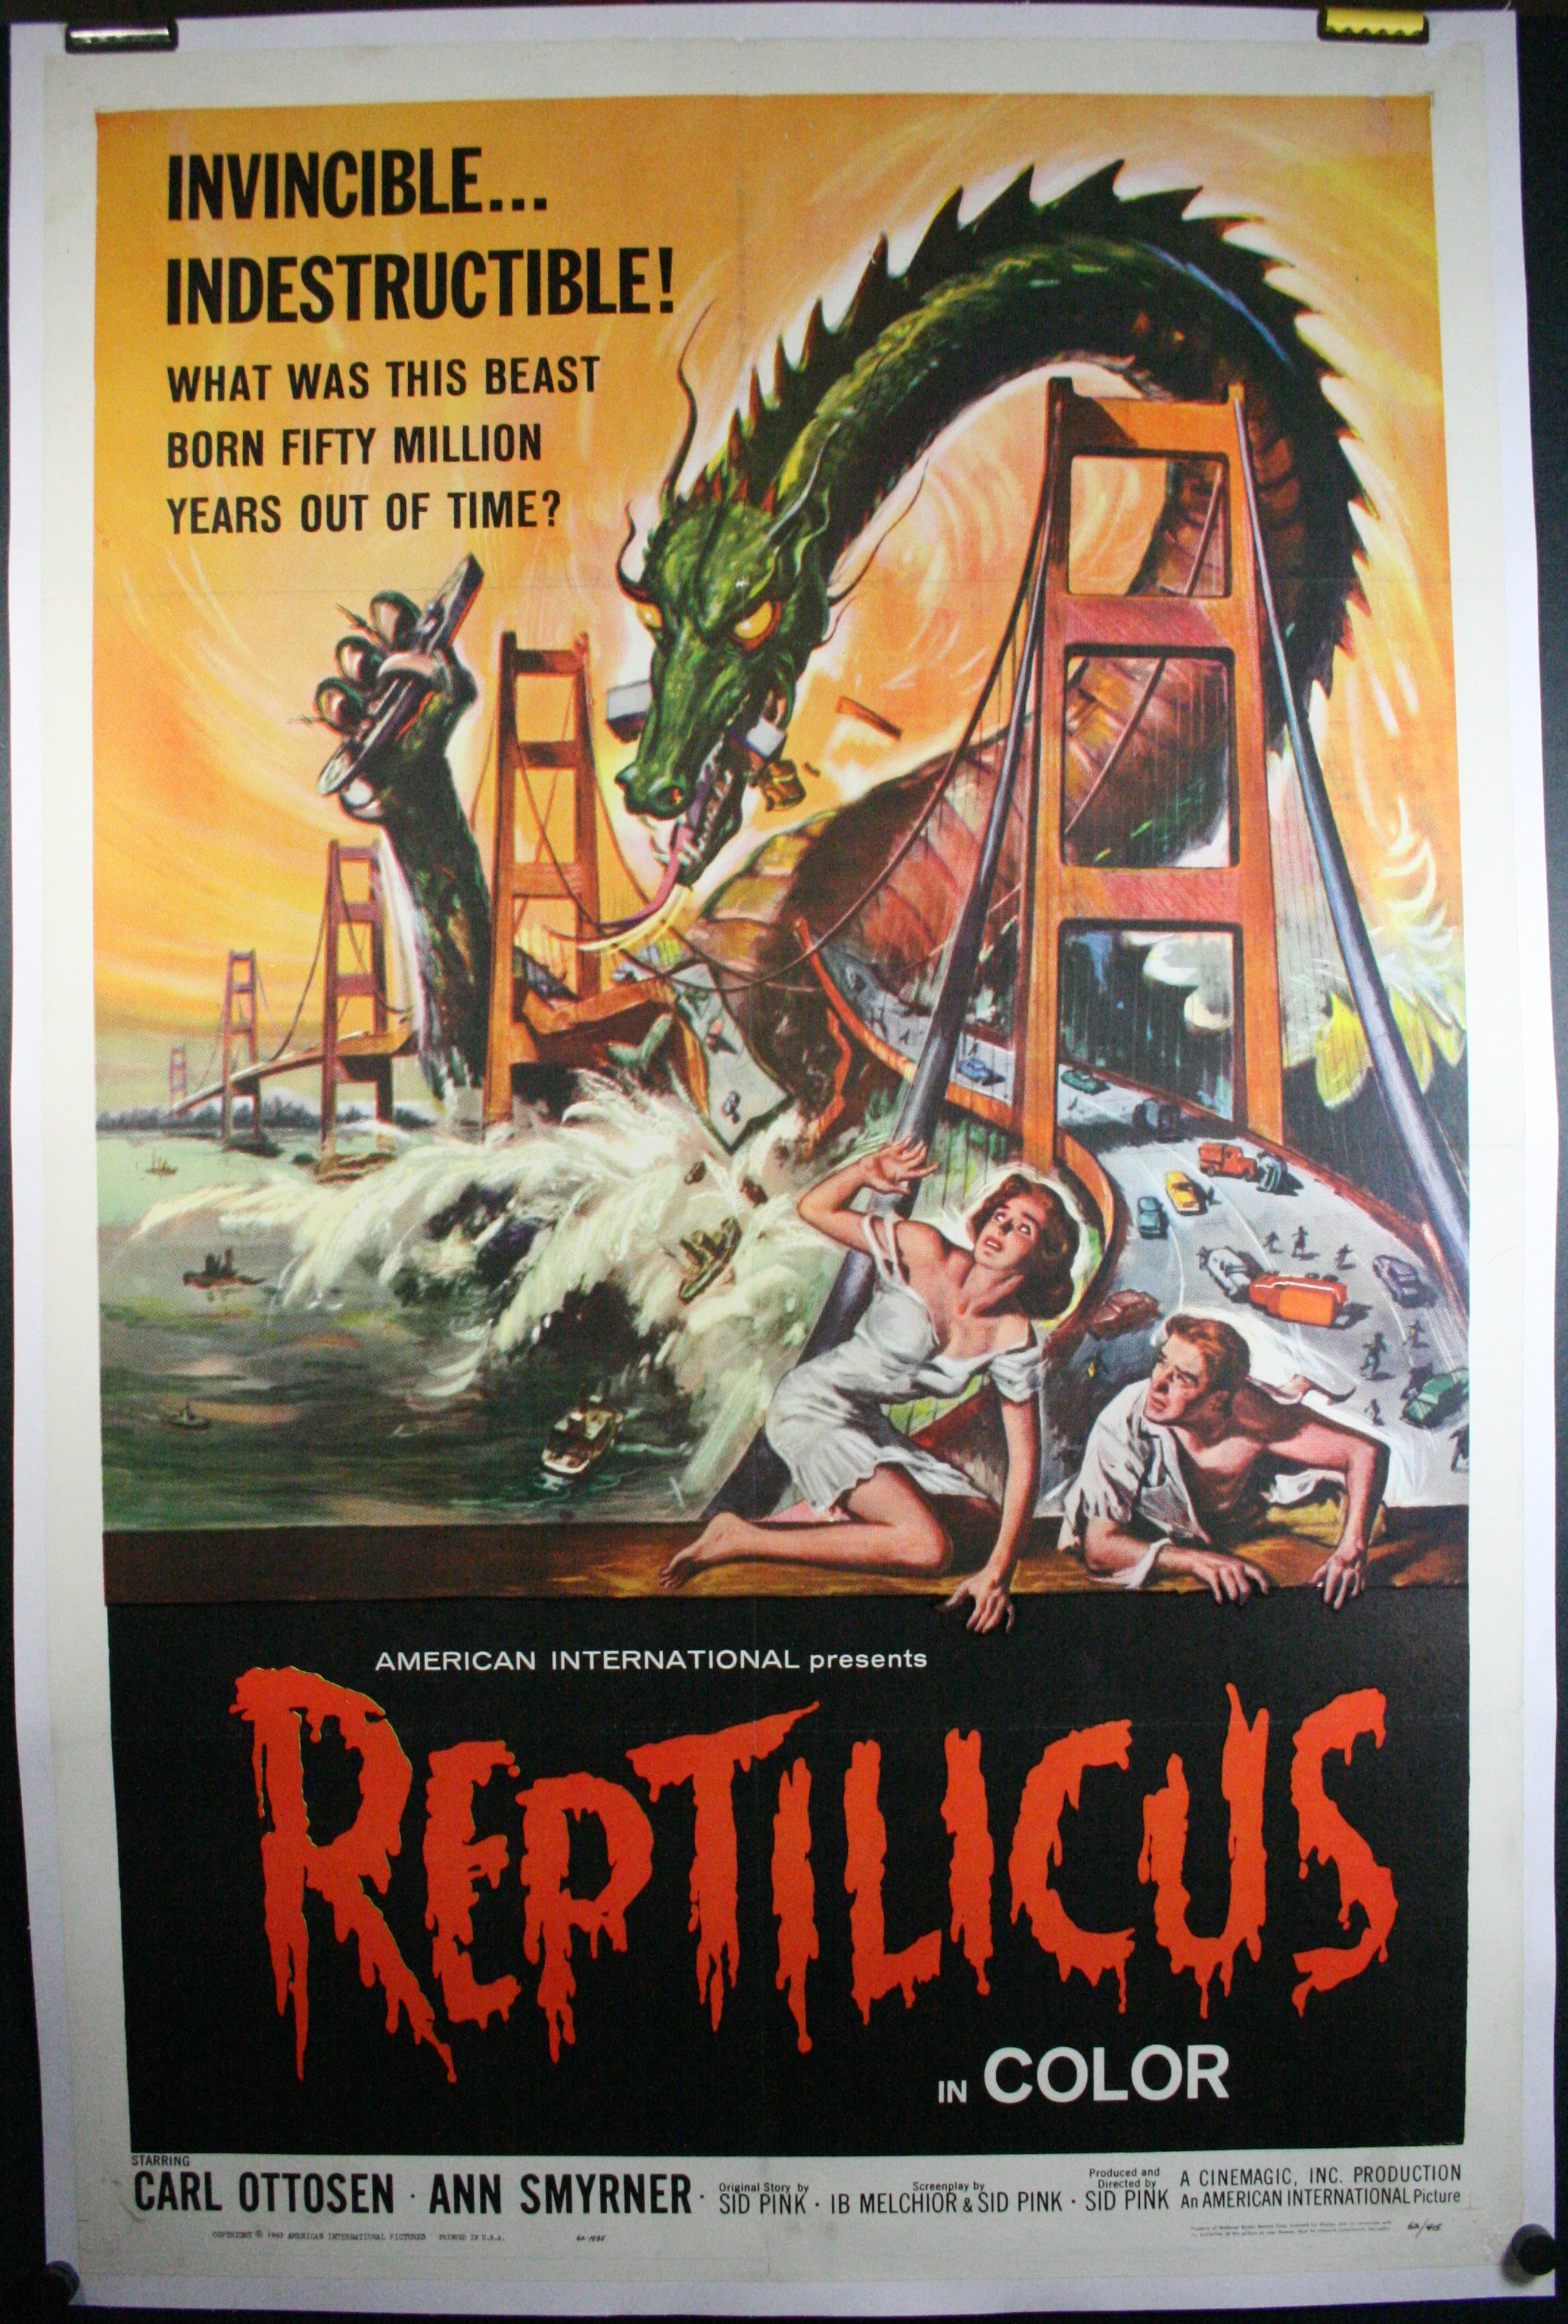 Reptilicus, Original Authentic 60S Sci Fi Monster Movie Theater Poster For Sale-9214